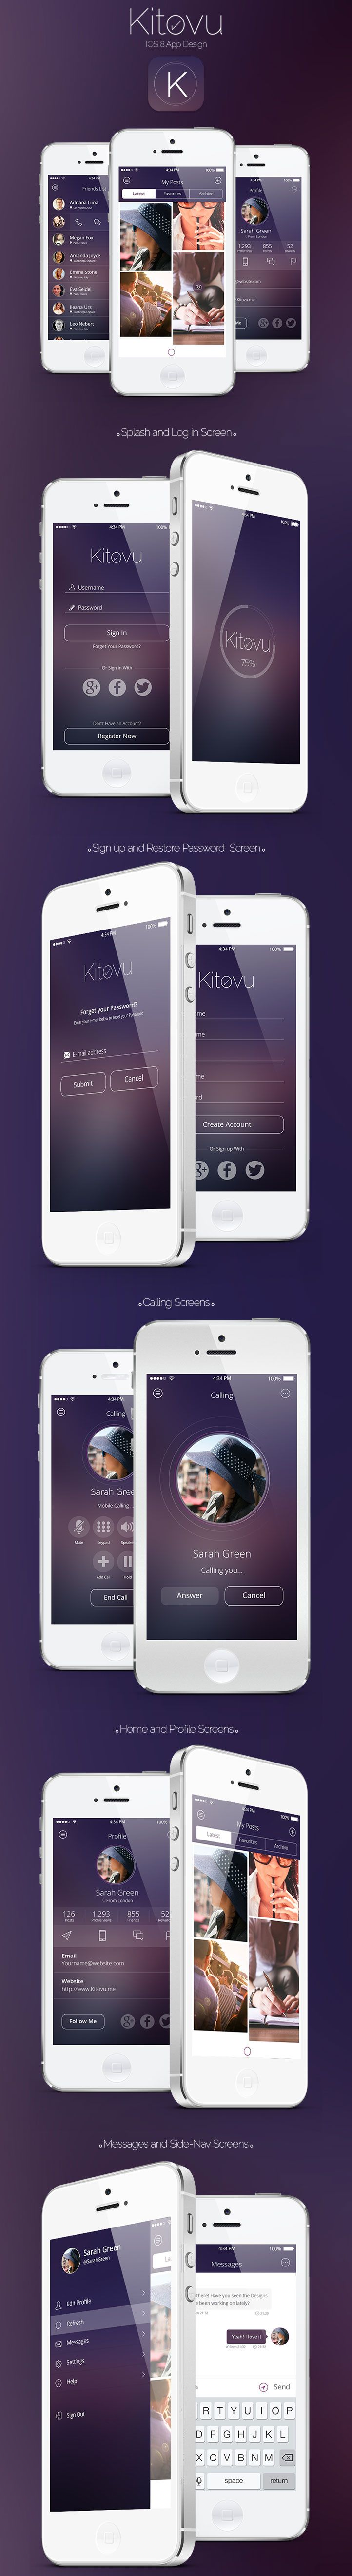 Daily Mobile UI Design Inspiration